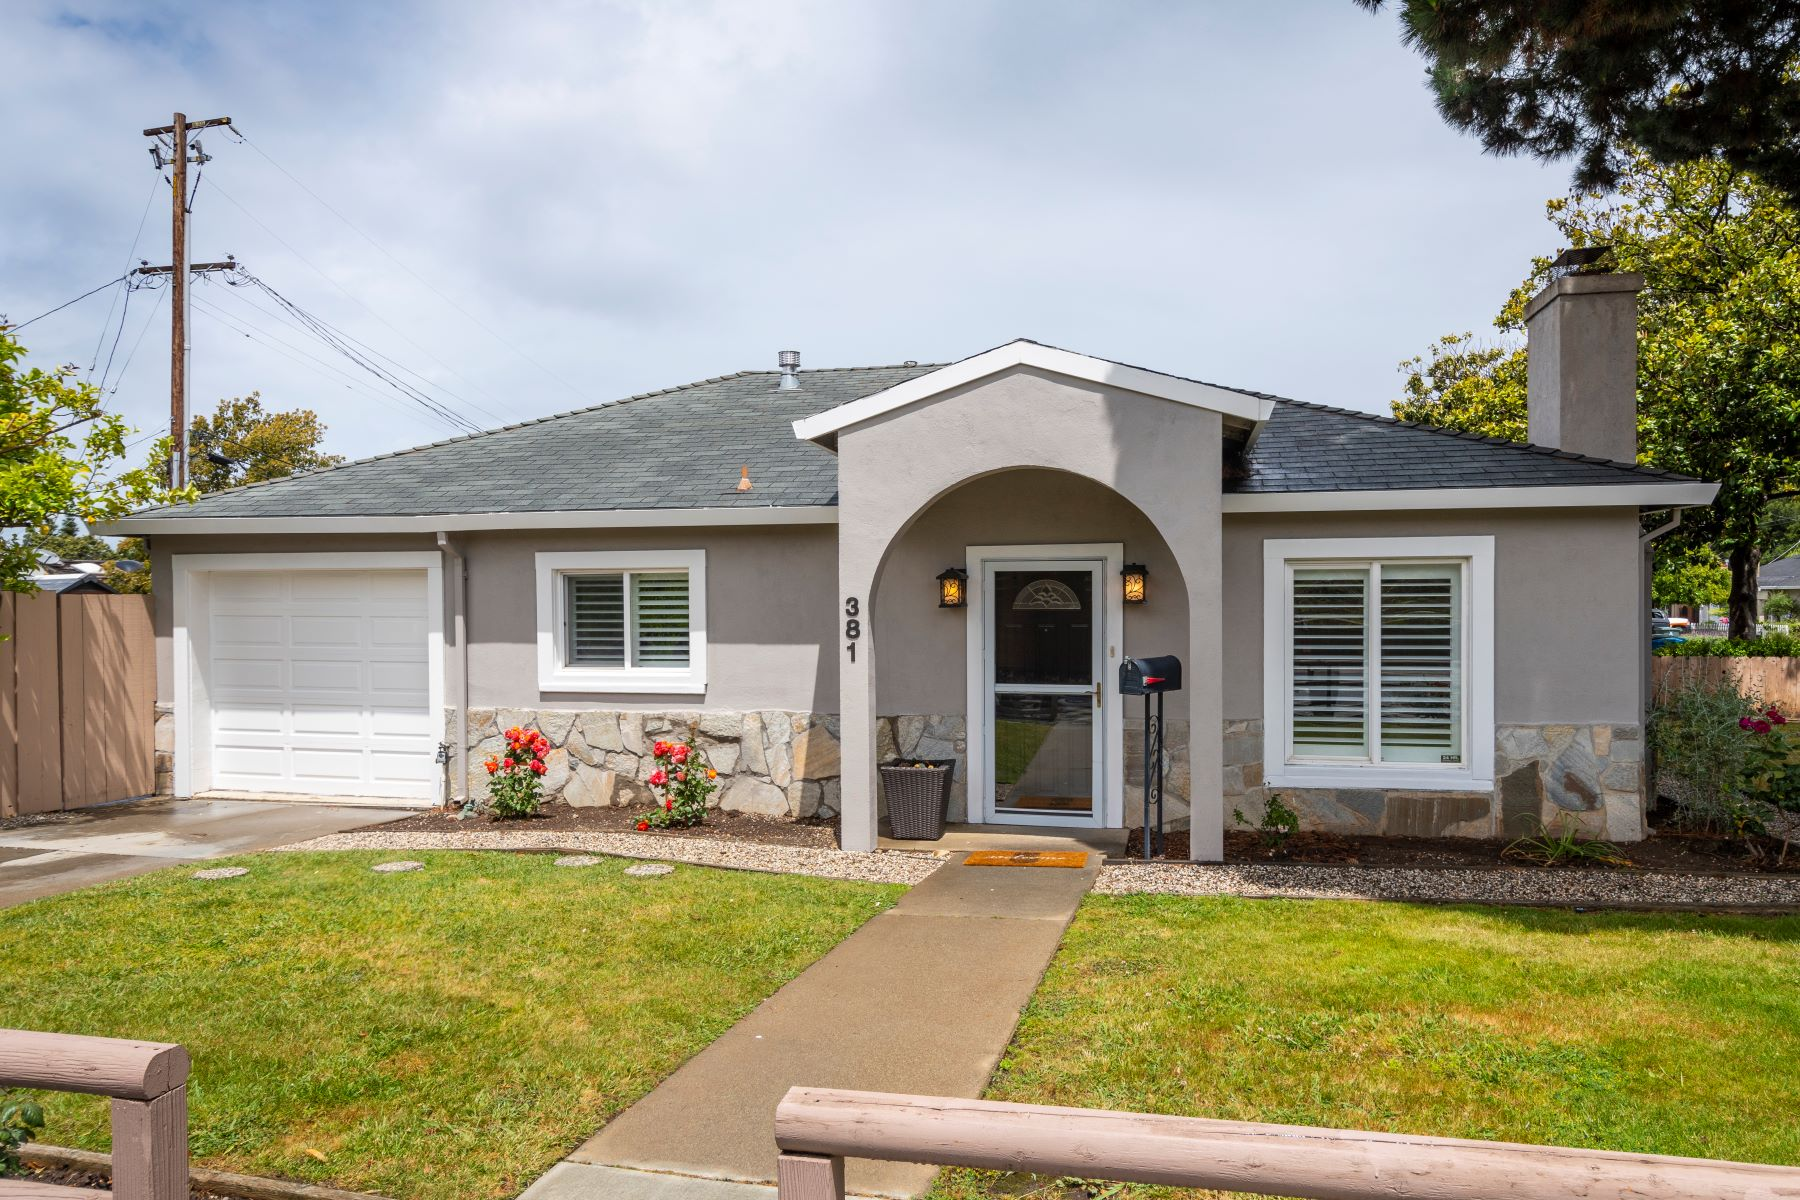 Single Family Home for Active at Adorable Home with Many Upgrades 381 Old County Road San Carlos, California 94070 United States